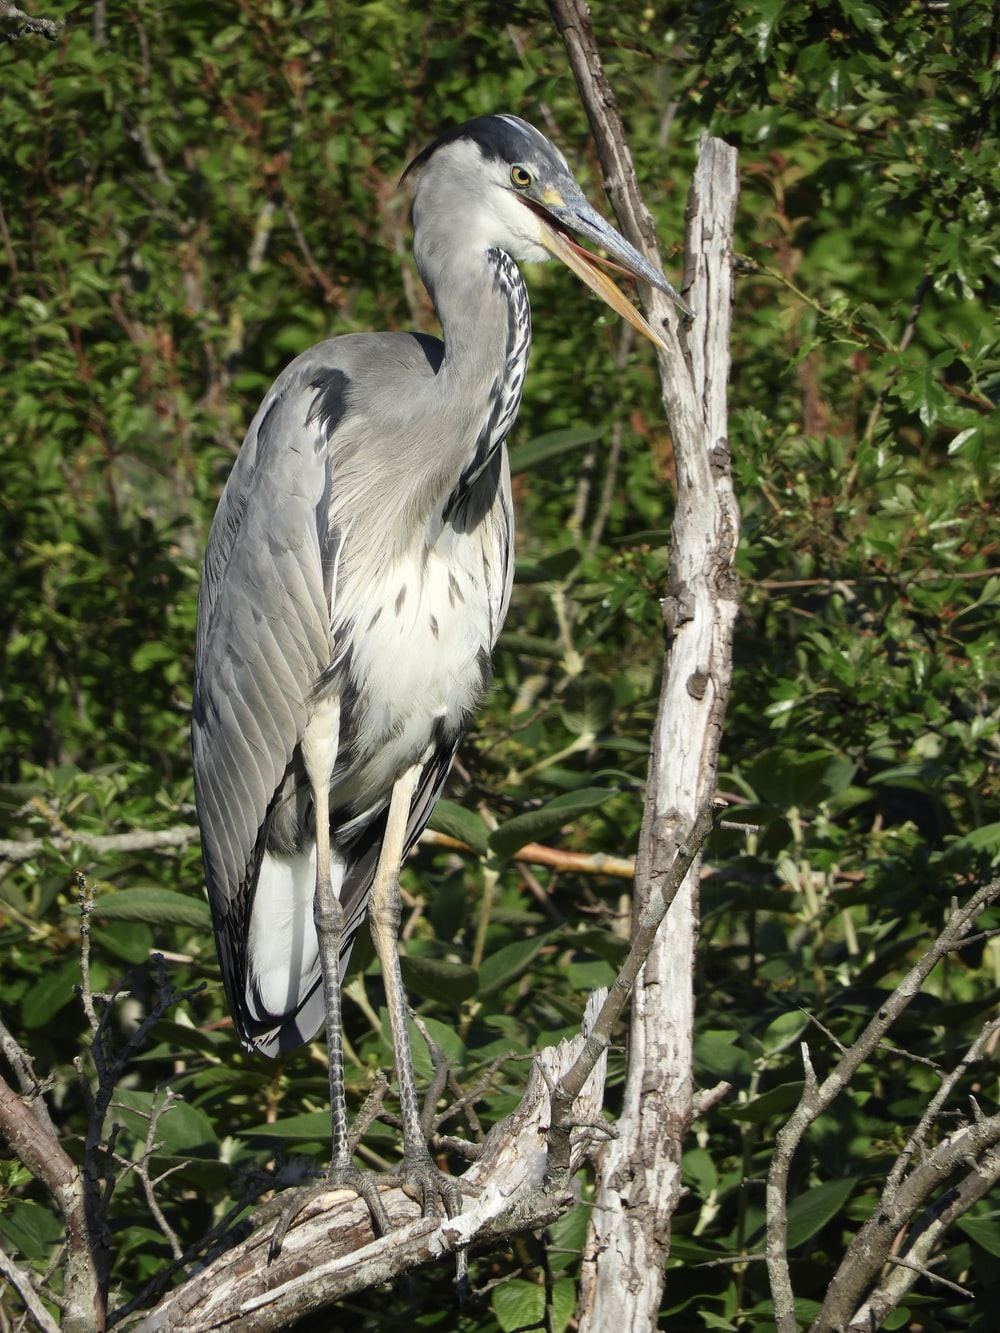 grey heron perched on brown tree branch during daytime